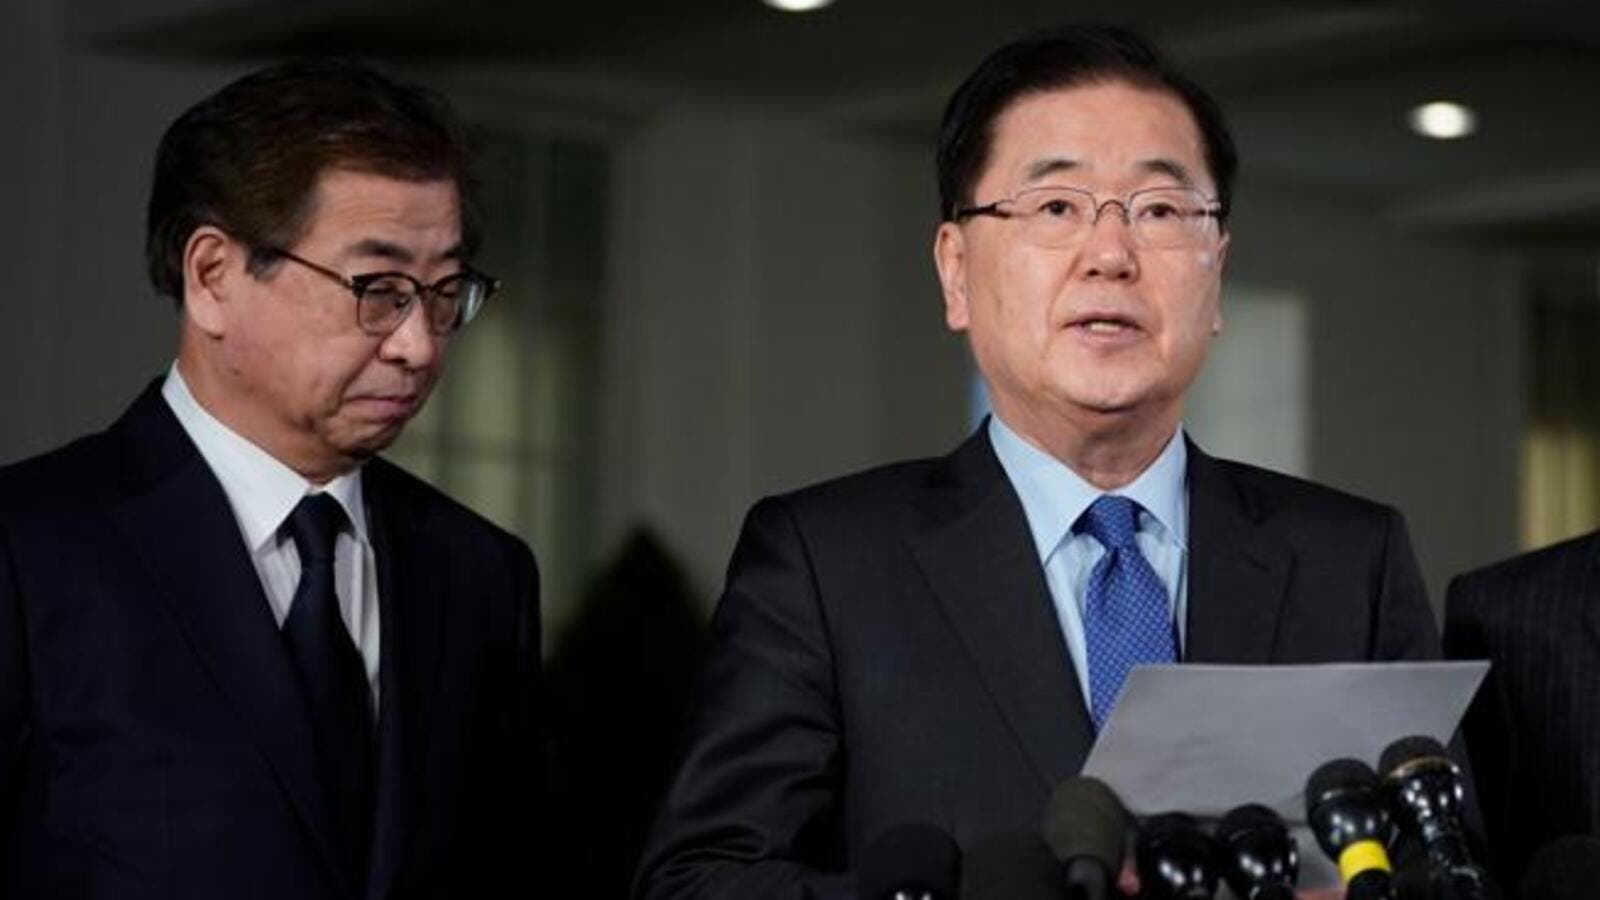 South Korean National Security Advisor Chung Eui-yong, right, briefs reporters outside the West Wing of the White House in Washington. (AFP/ File)